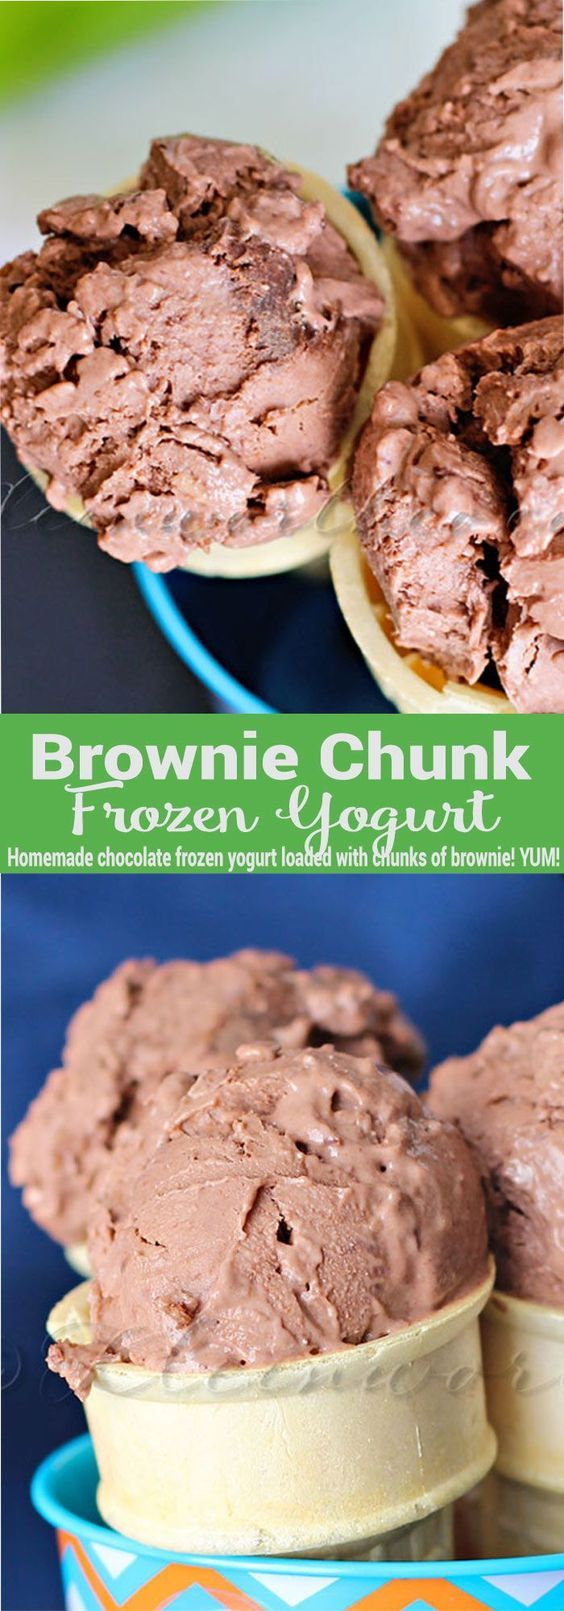 Brownie Chunk Frozen Yogurt -the perfect easy summer dessert. No-bake chocolate treats loaded with brownies makes this no-churn frozen yogurt pure heaven! via @KleinworthCo